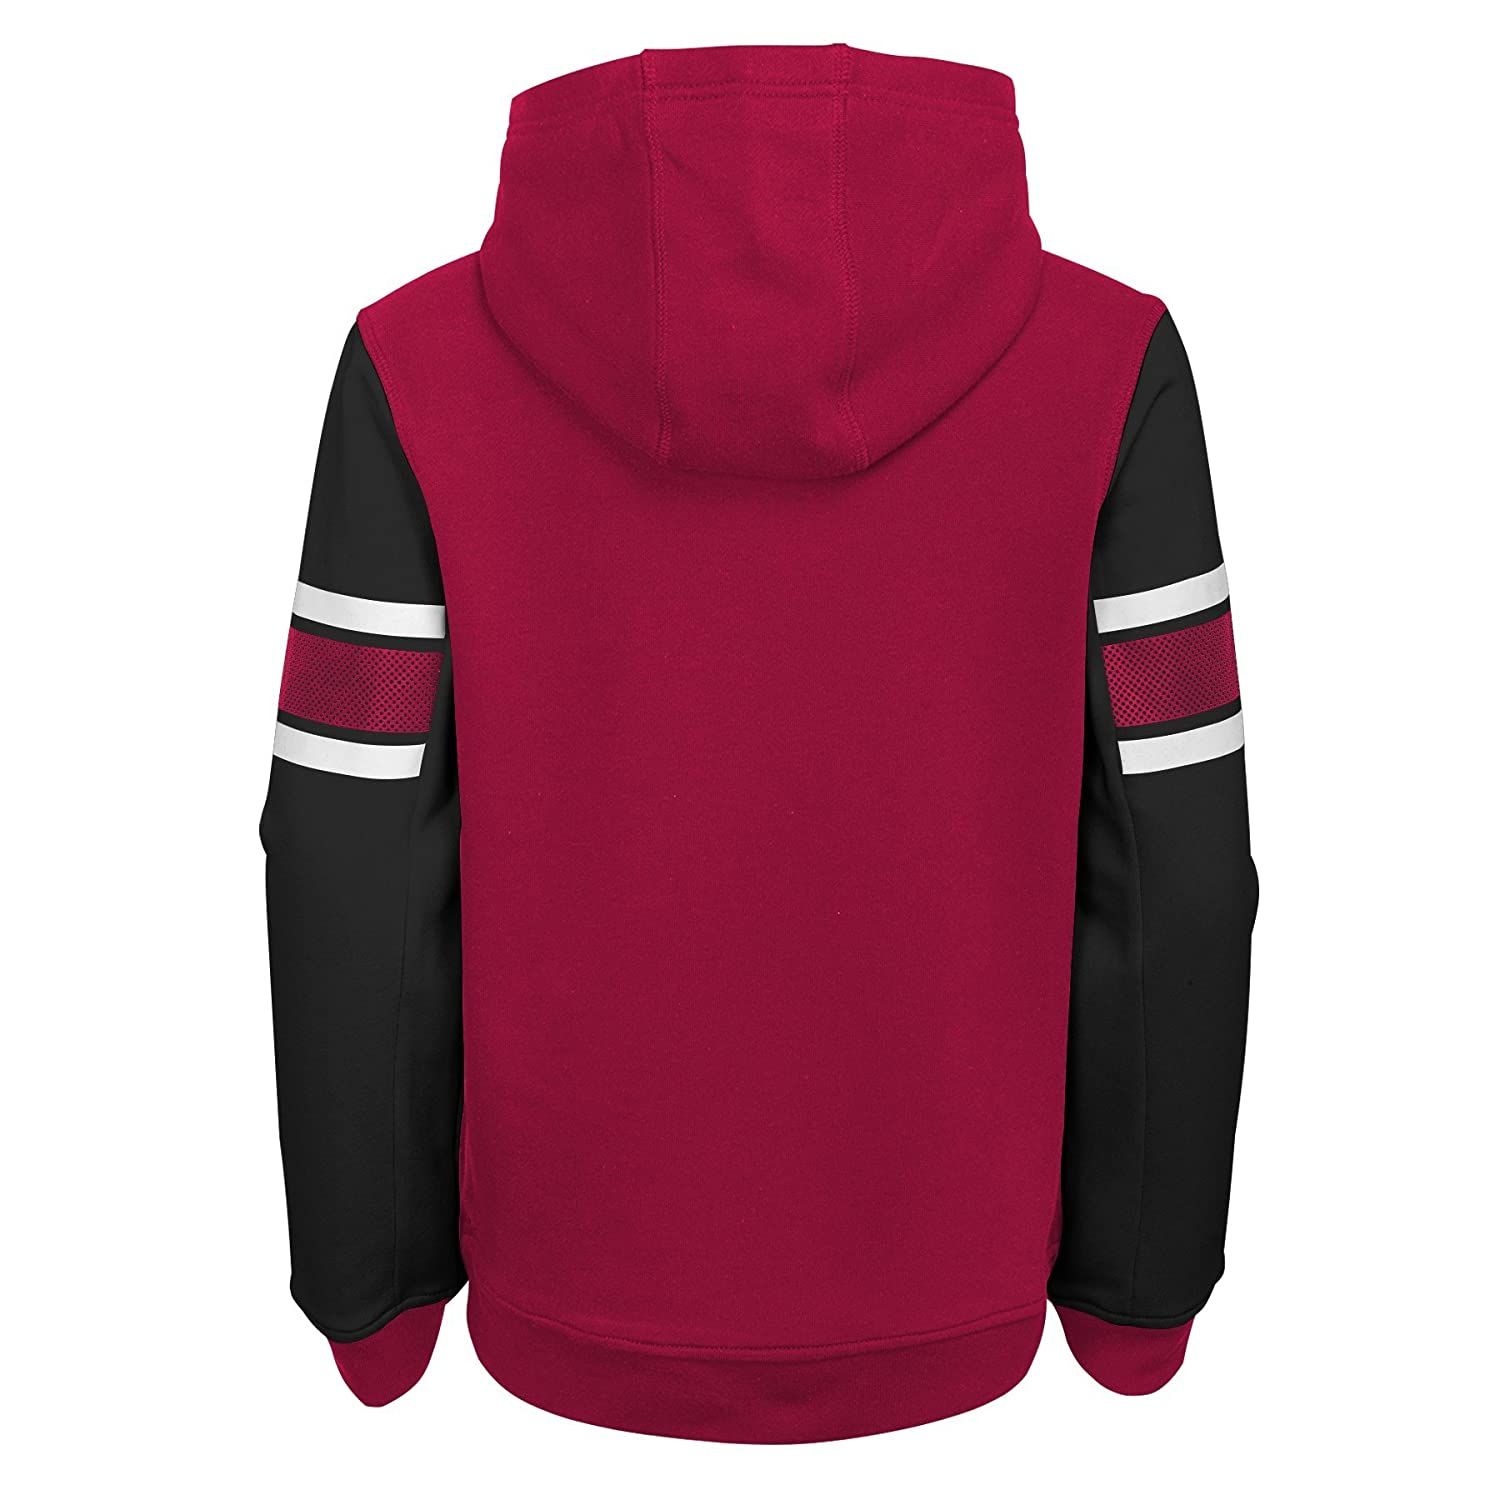 d46dca880 Amazon.com   NFL Boys Kids   Youth Boys Man in Motion Pullover Hoodie    Sports   Outdoors